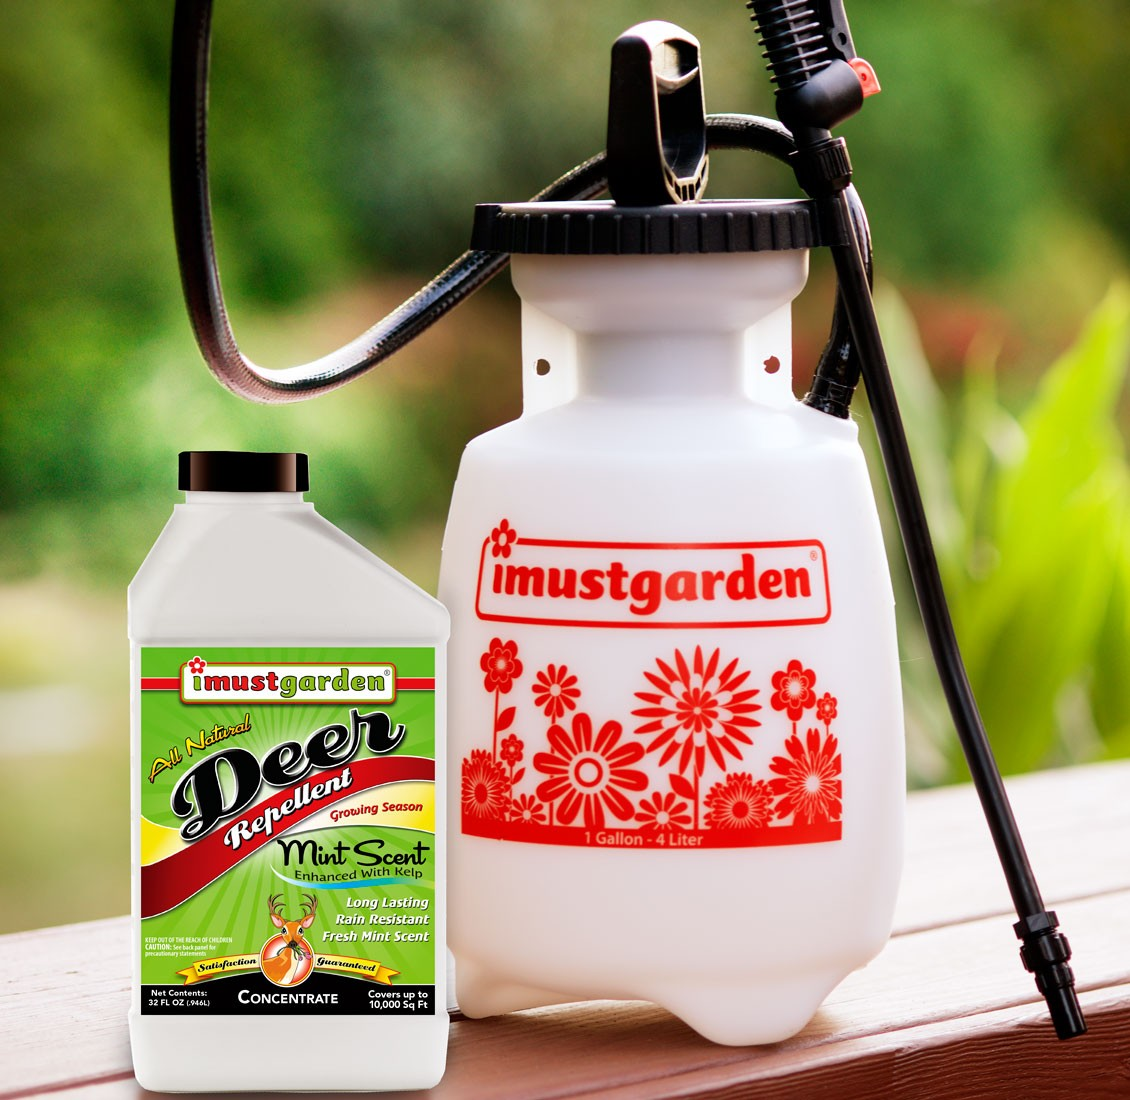 (32 oz) Deer Repellent Mint Scent, 32oz Concentrate + Gallon Sprayer -I Must Garden Deer Repellent offers superior year-round protection against deer damage. While totally harmless to deer, our deer repellent will keep deer from eating flowers, plants,